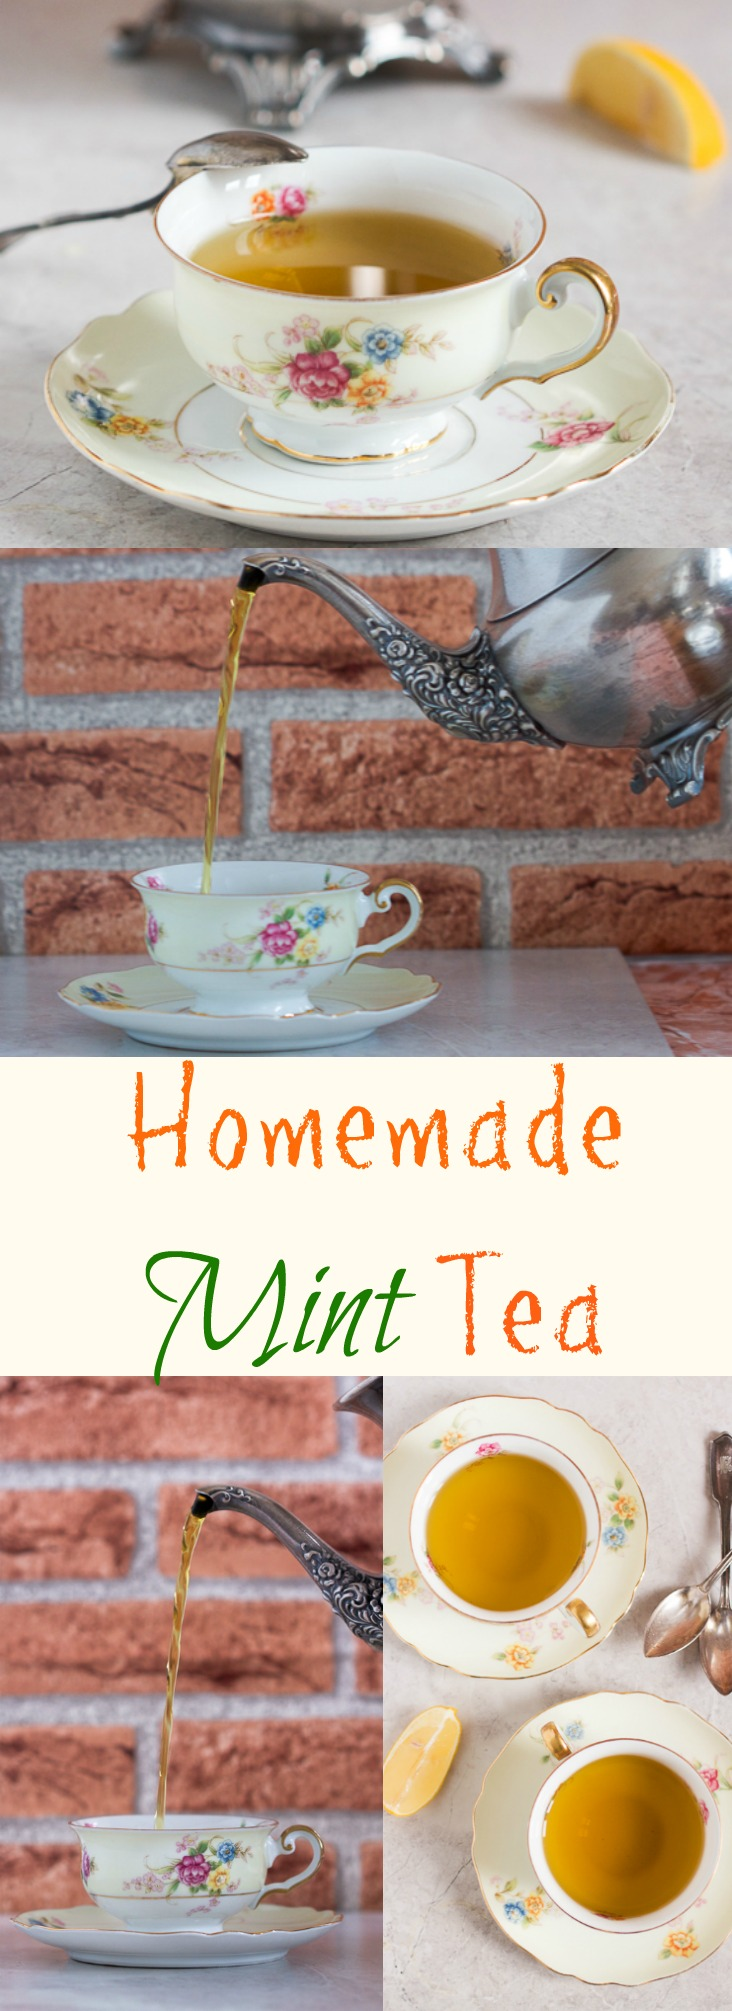 Why buy mint tea when you can make your own from scratch?